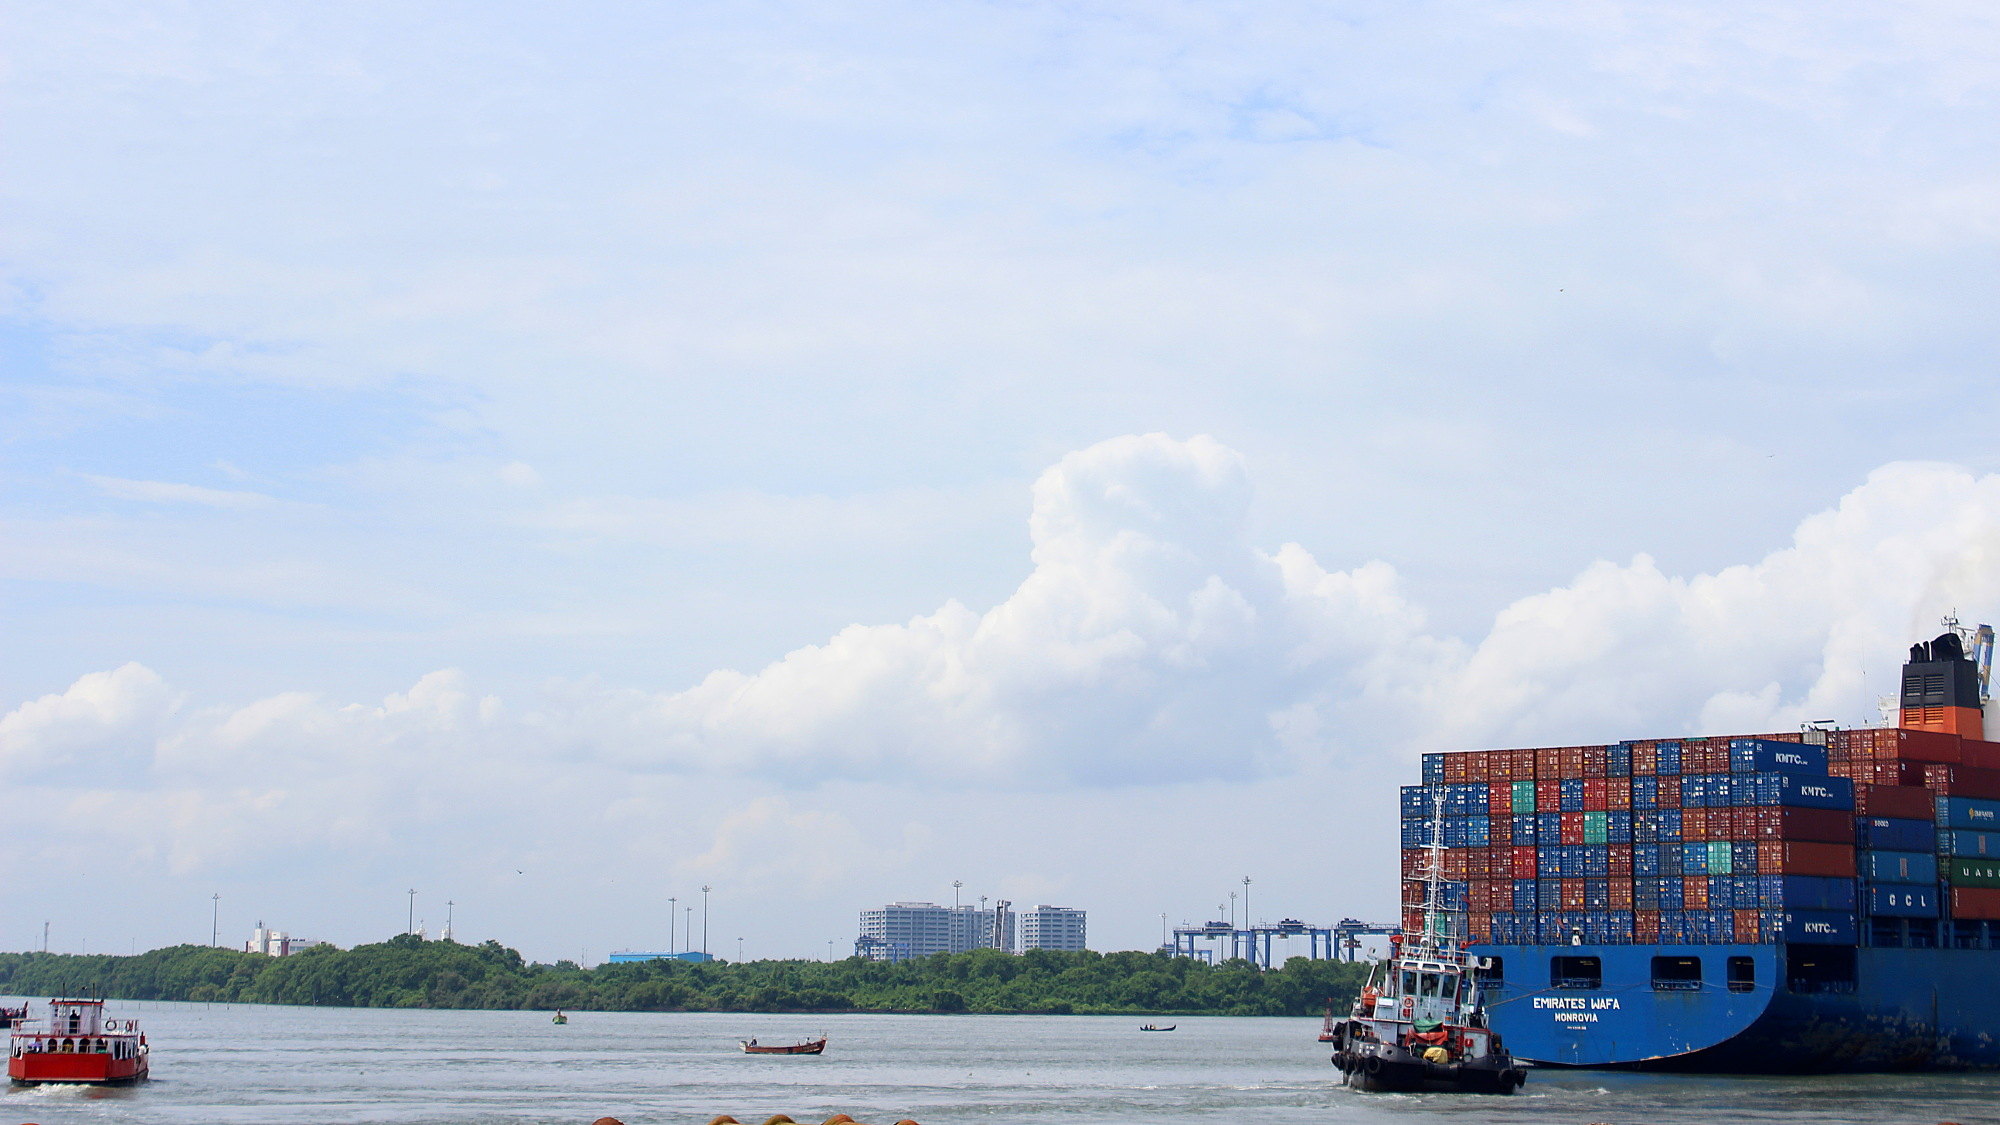 A massive cargo ship disappearing from the frame at the sea in front of Fort Kochi.